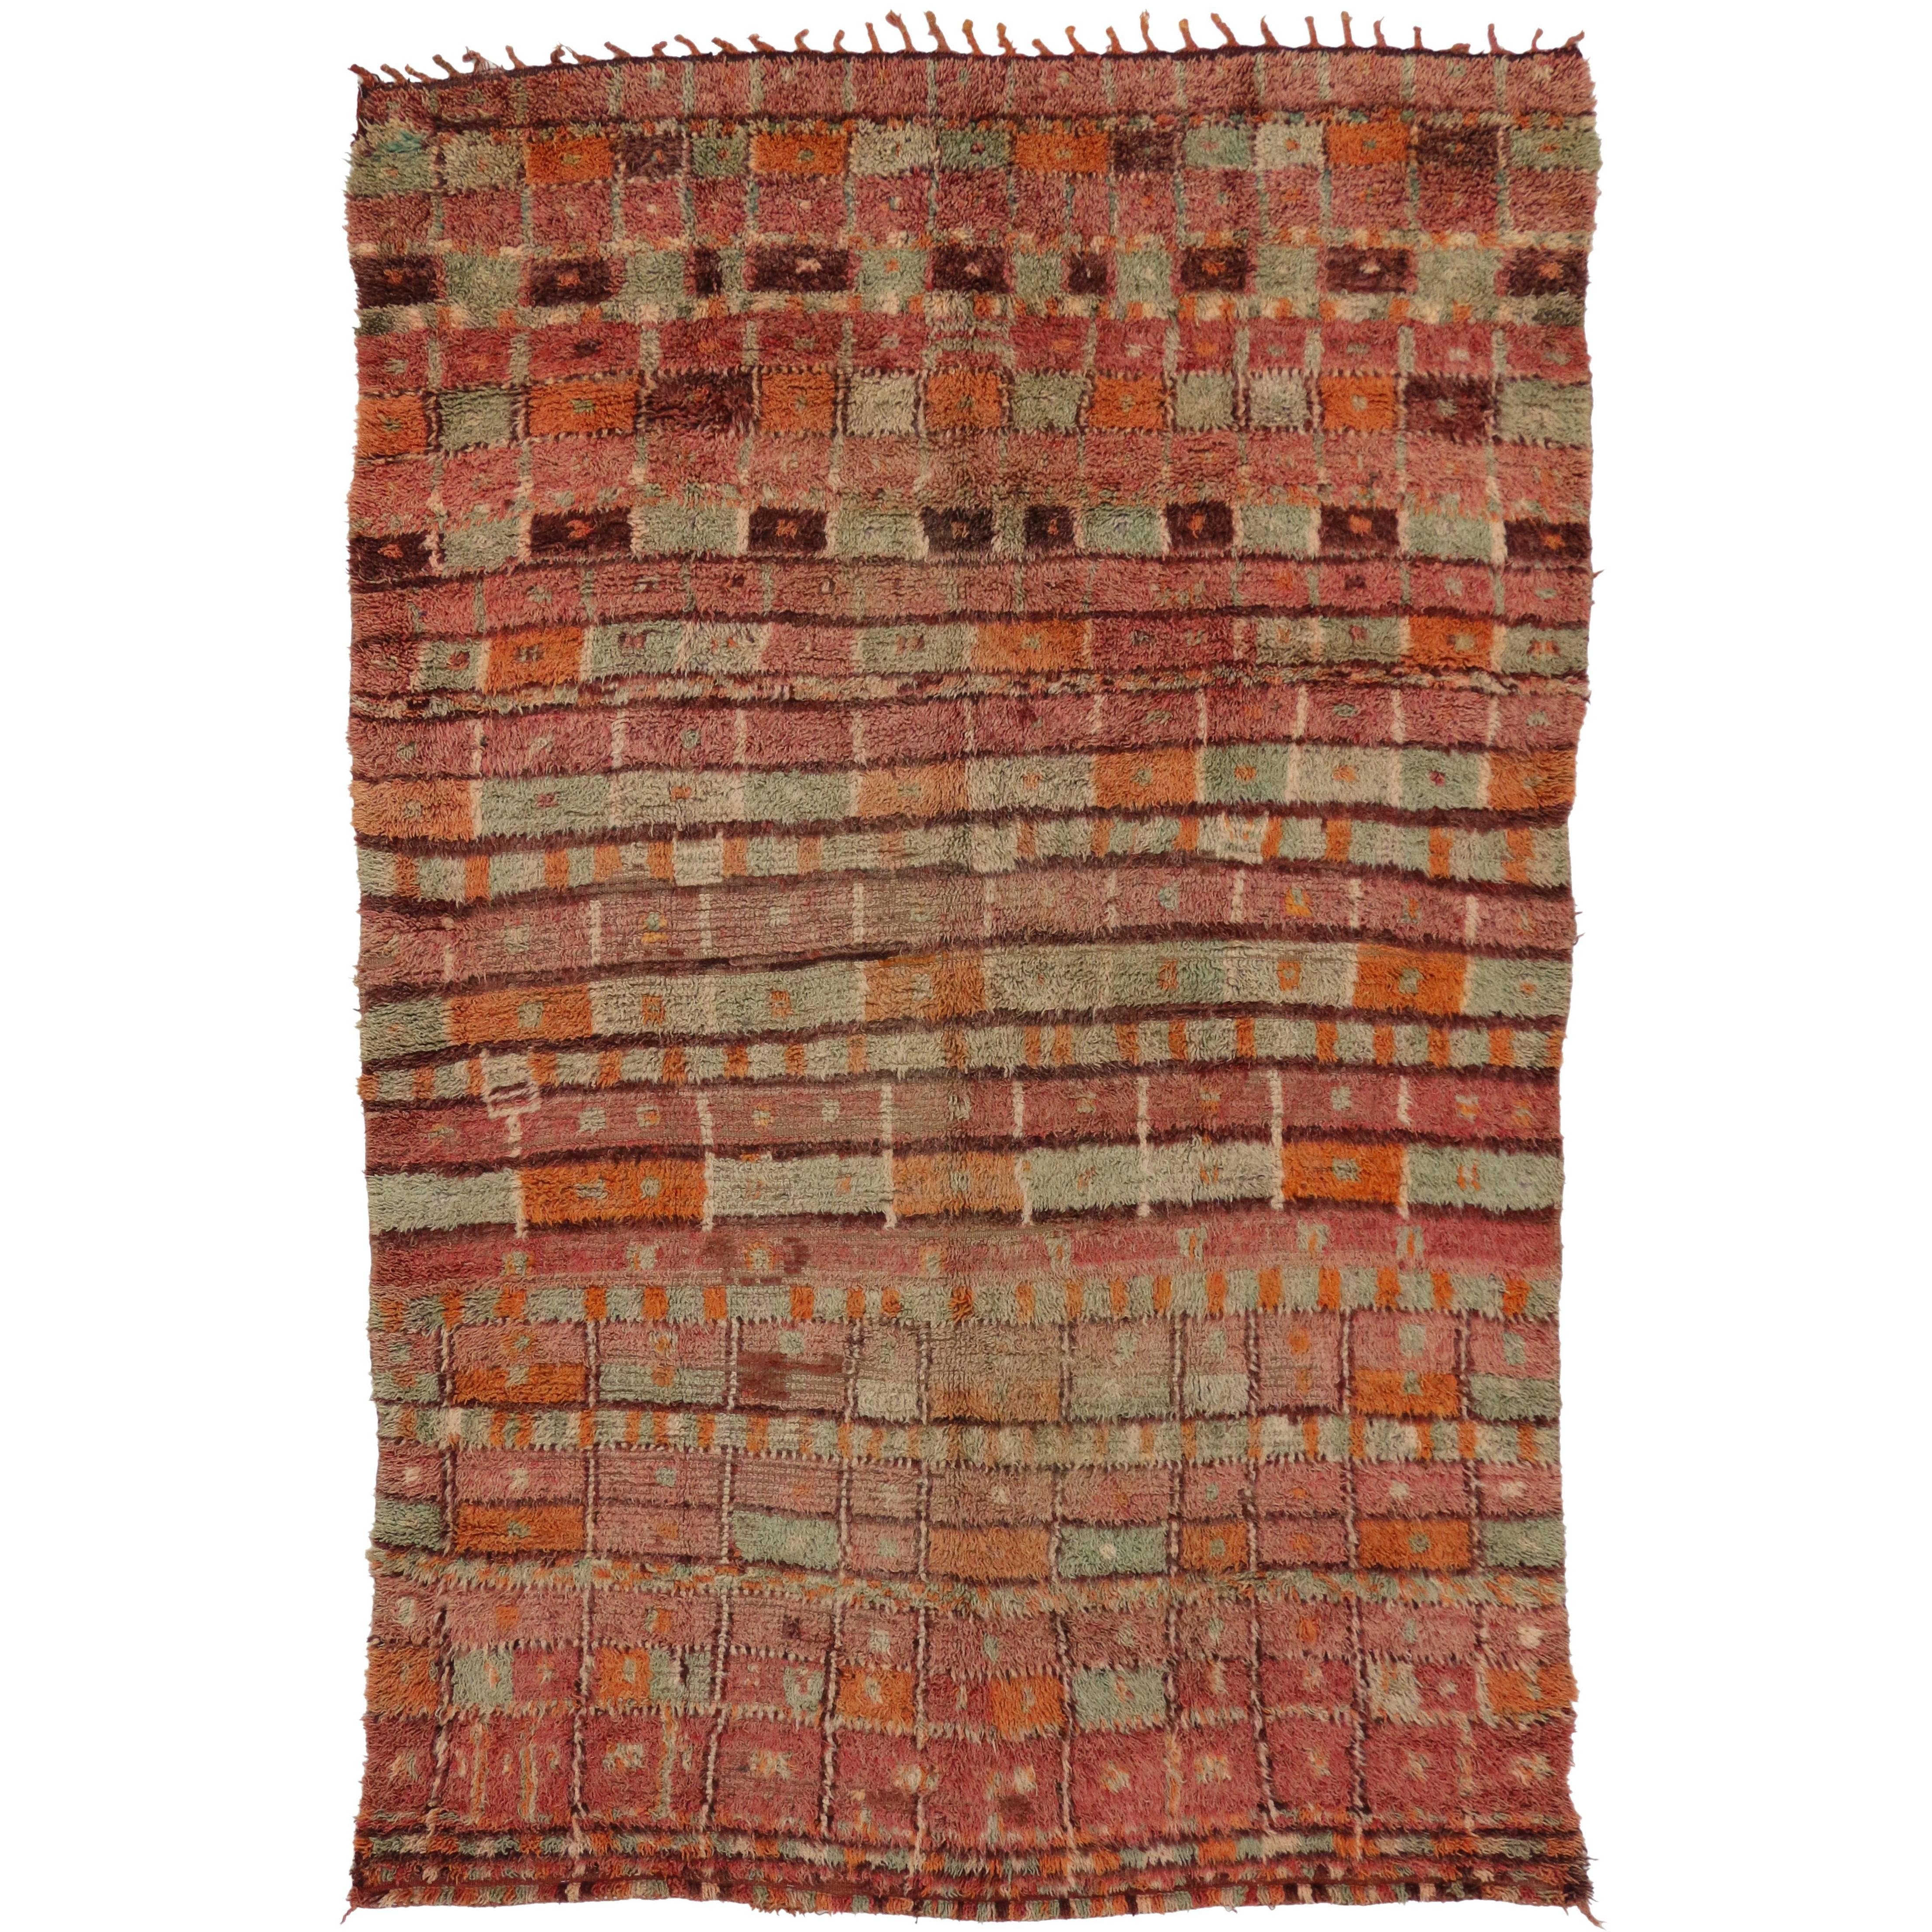 Vintage Berber Moroccan Boujad Rug with Post-Modern Cubism Style